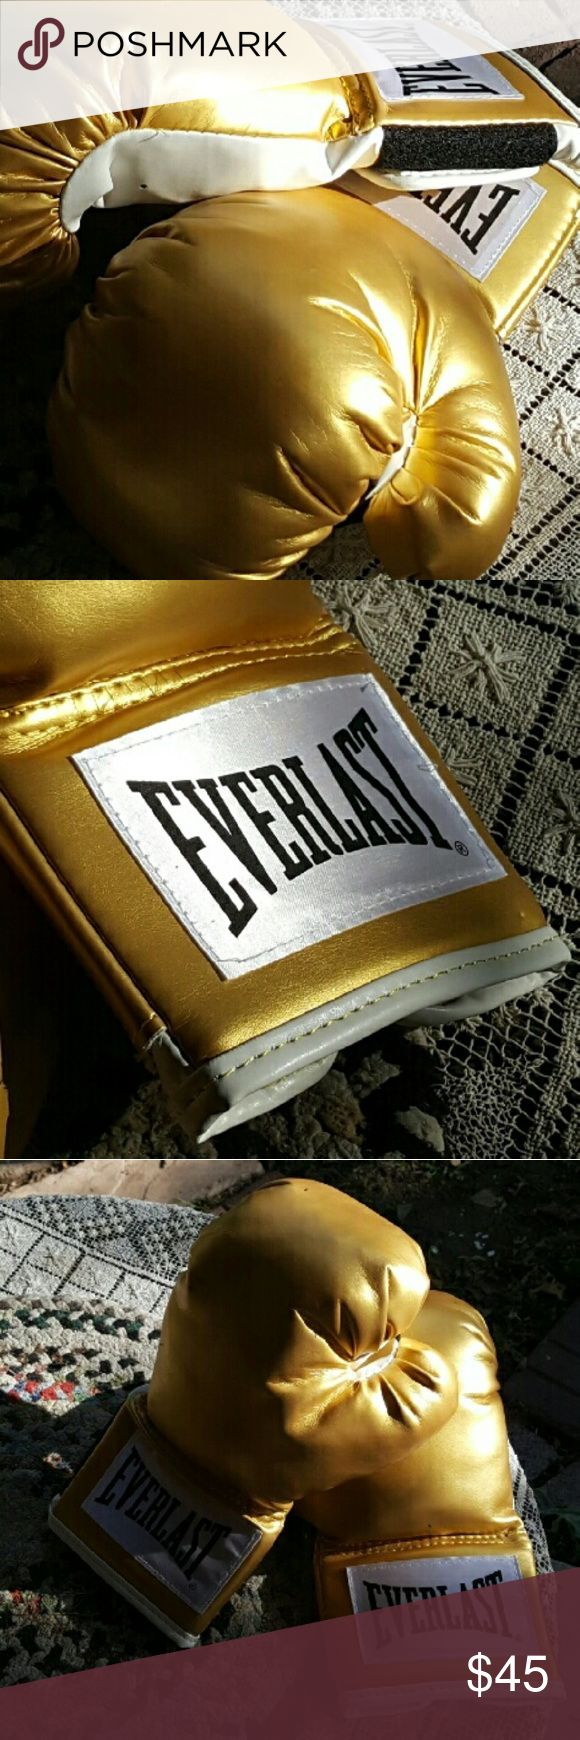 Everlast Boxing Gloves Gold, white, and Packing a Punch! ?? Everlast Other